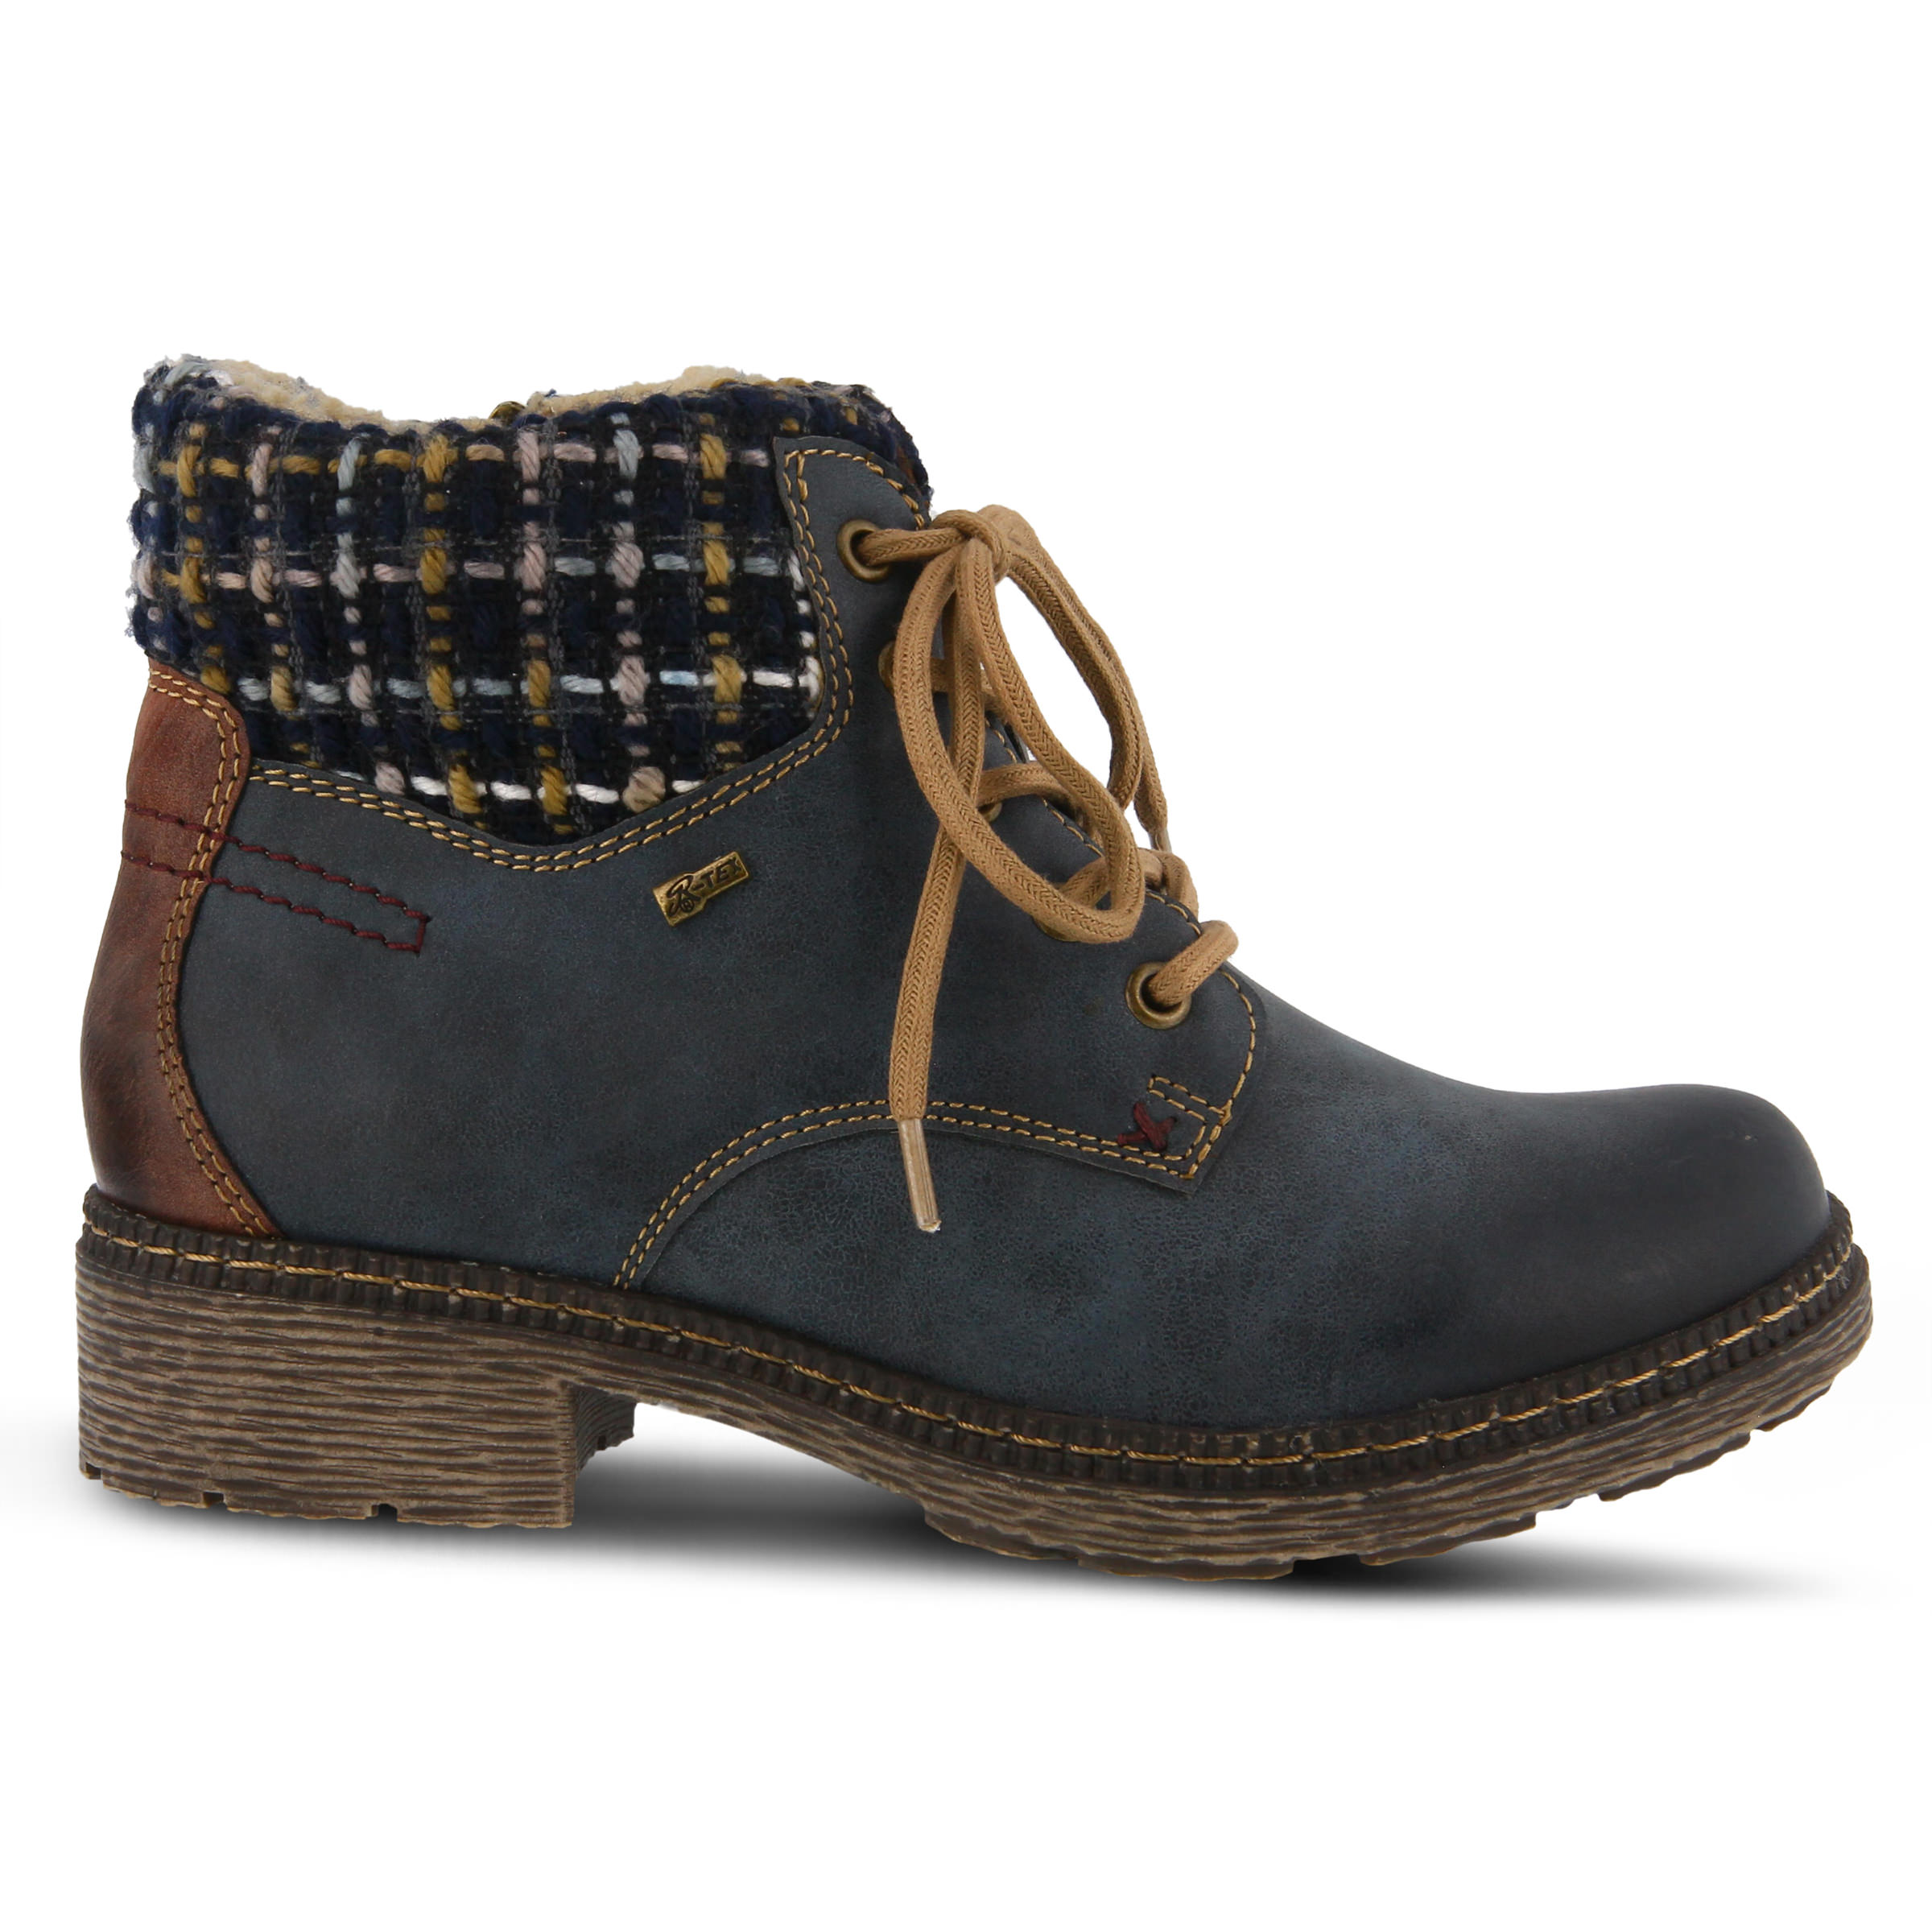 SPRING STEP Marylee Women's Boots (Blue Faux Leather)